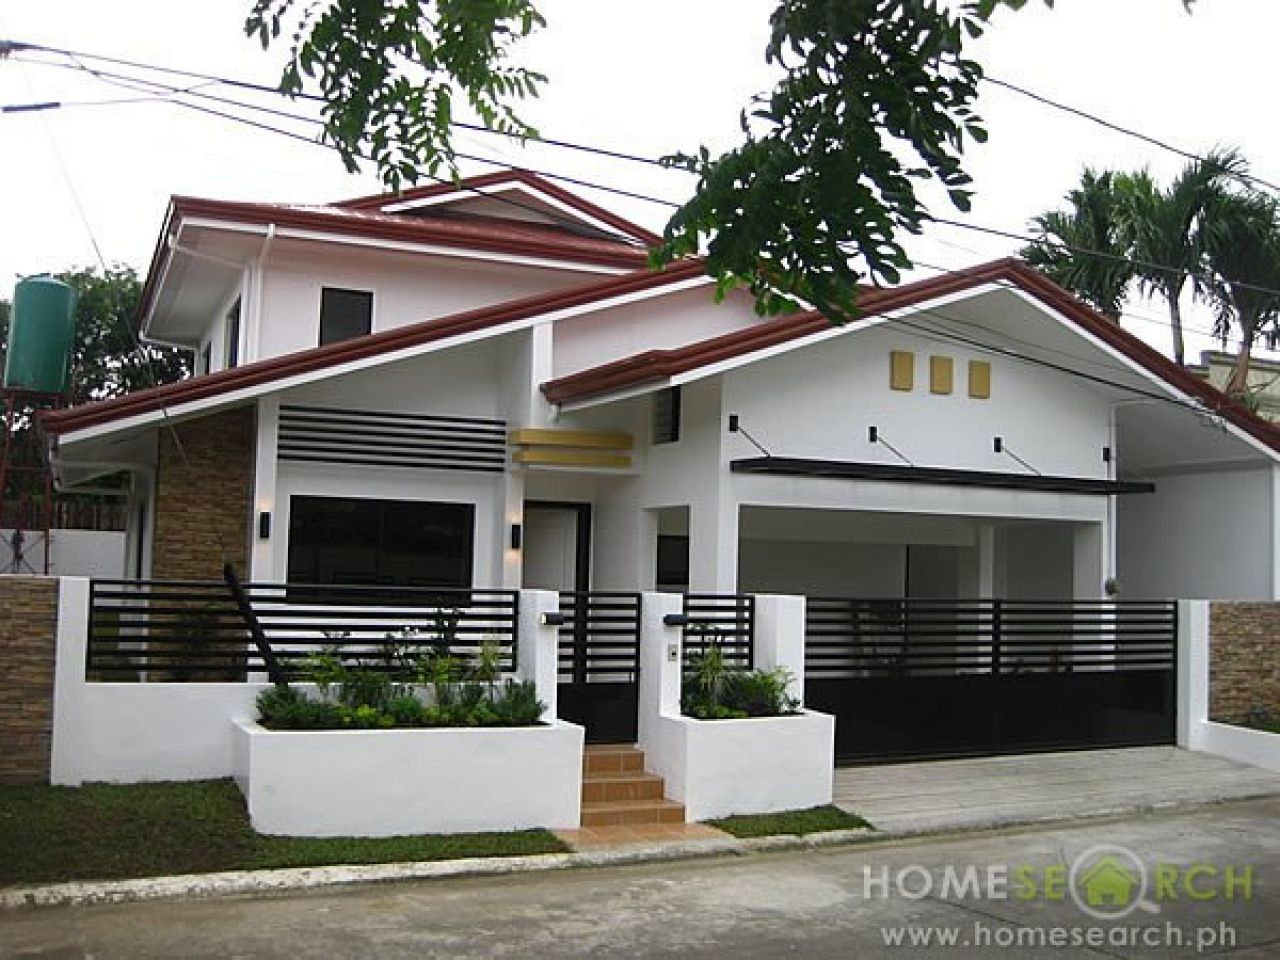 Simple Bungalow House Philippines Bungalow House Design House